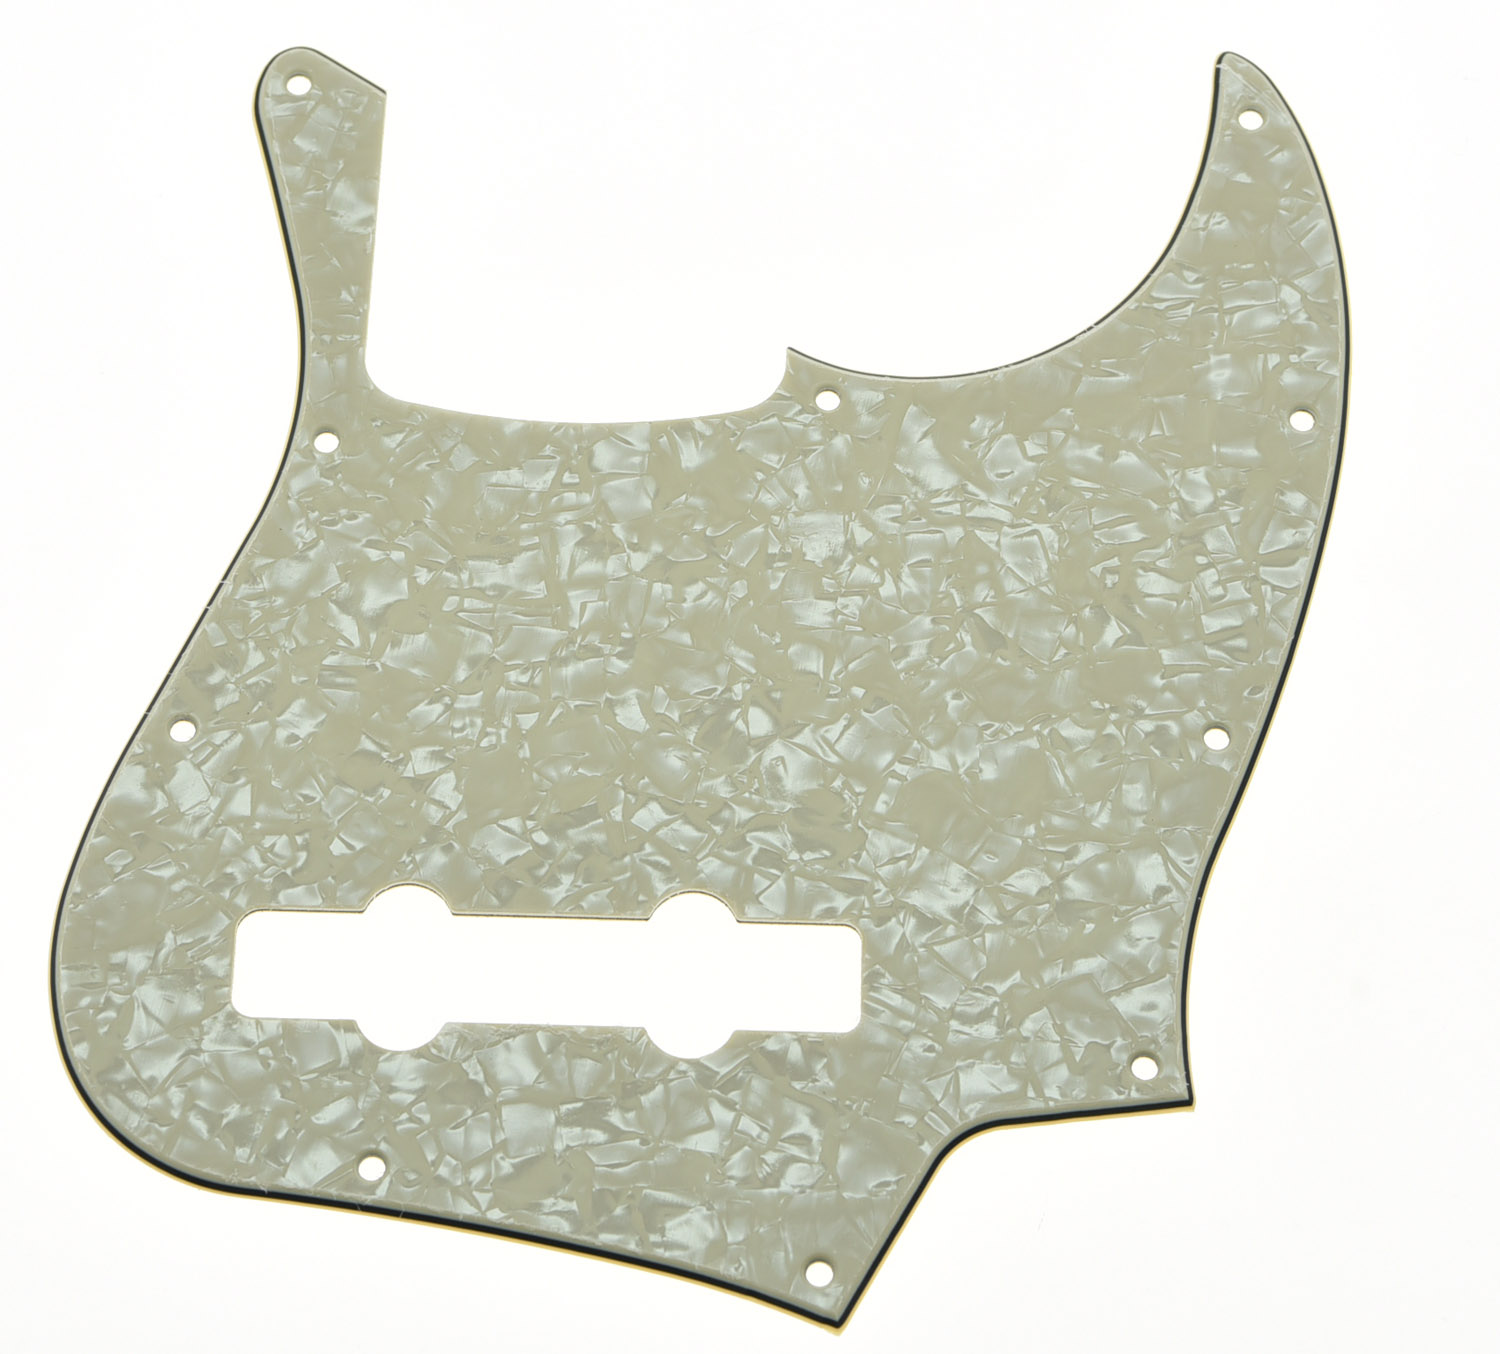 USA Spec Aged Pearl Pick guard 5 String Jazz J Bass Pickguard Scrach Plate